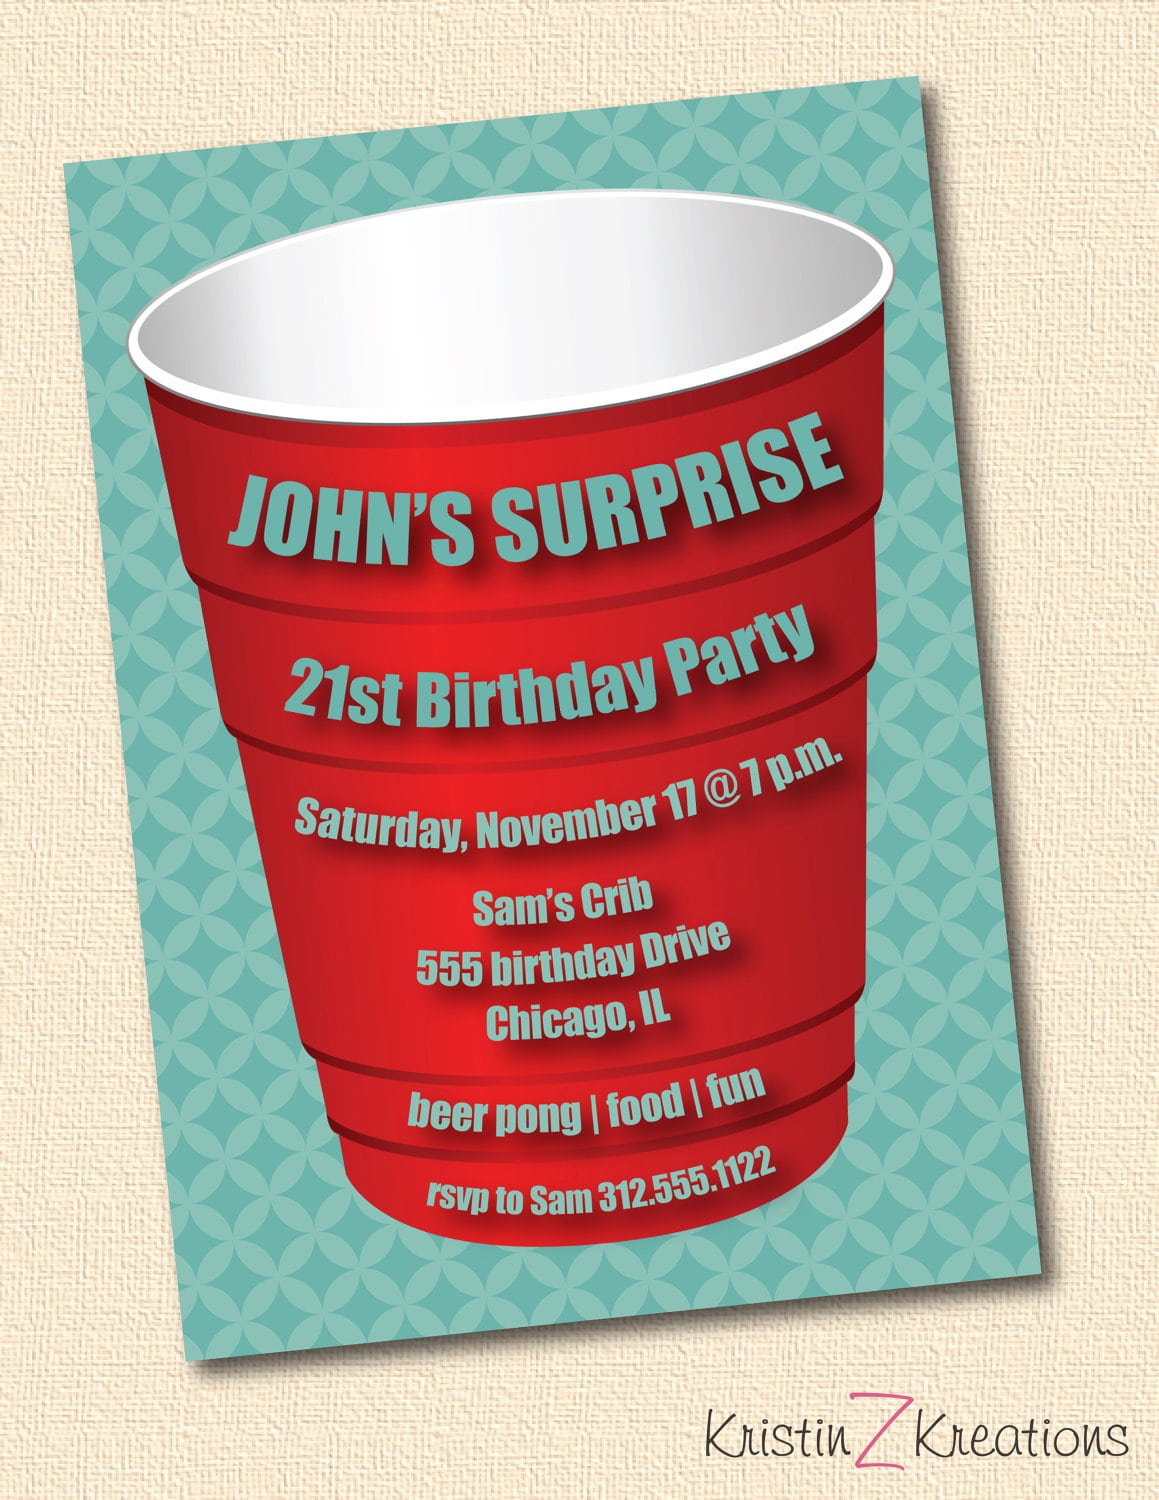 Red Solo Cup Party Invitations Gallery